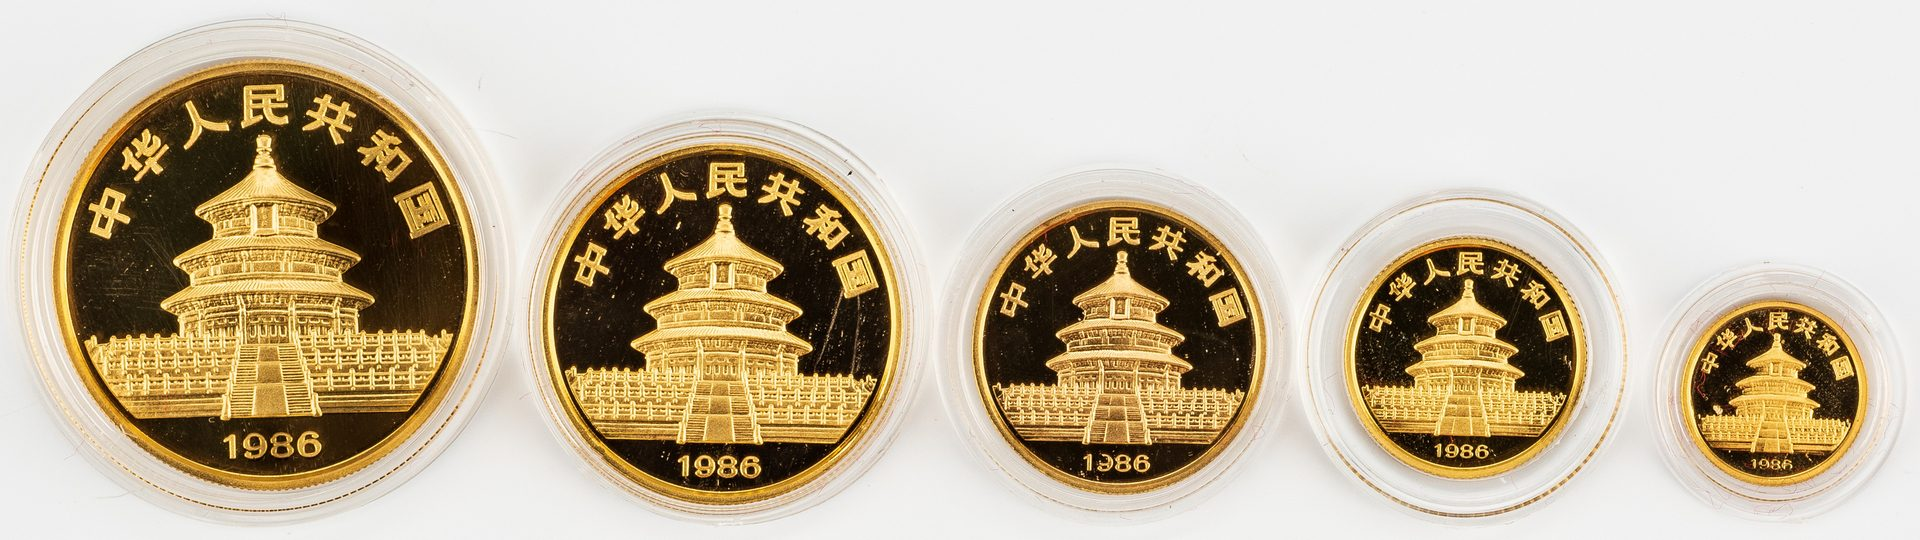 Lot 864: 1986 Chinese 5-Coin Gold Panda Proof Set